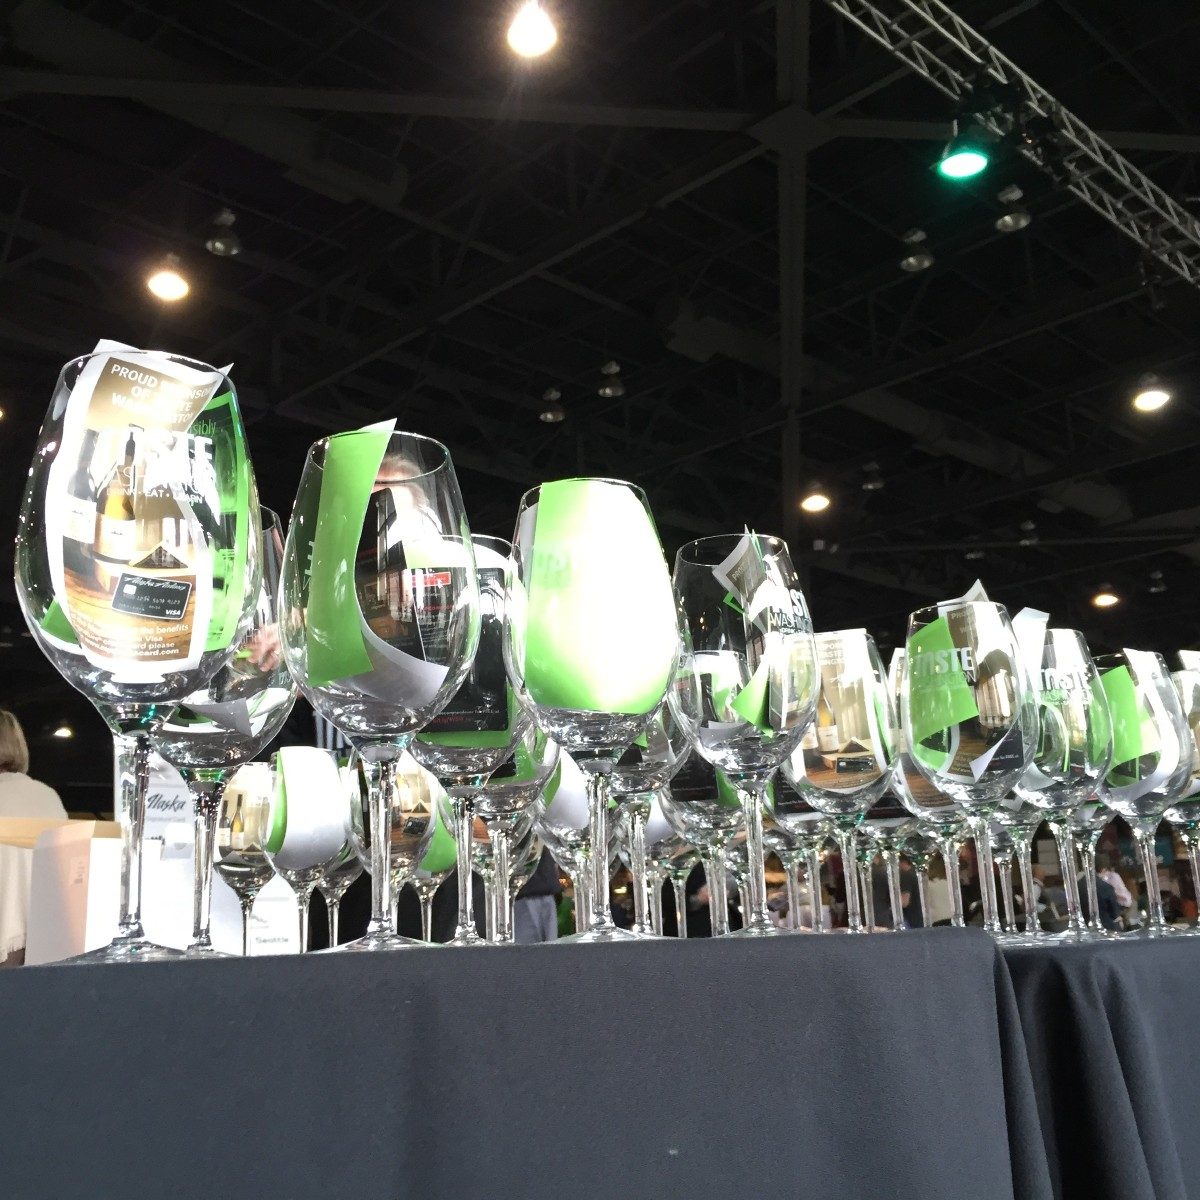 Wine glasses ready and waiting at the entrance of Taste Washington. (Image: Frank Guanco)